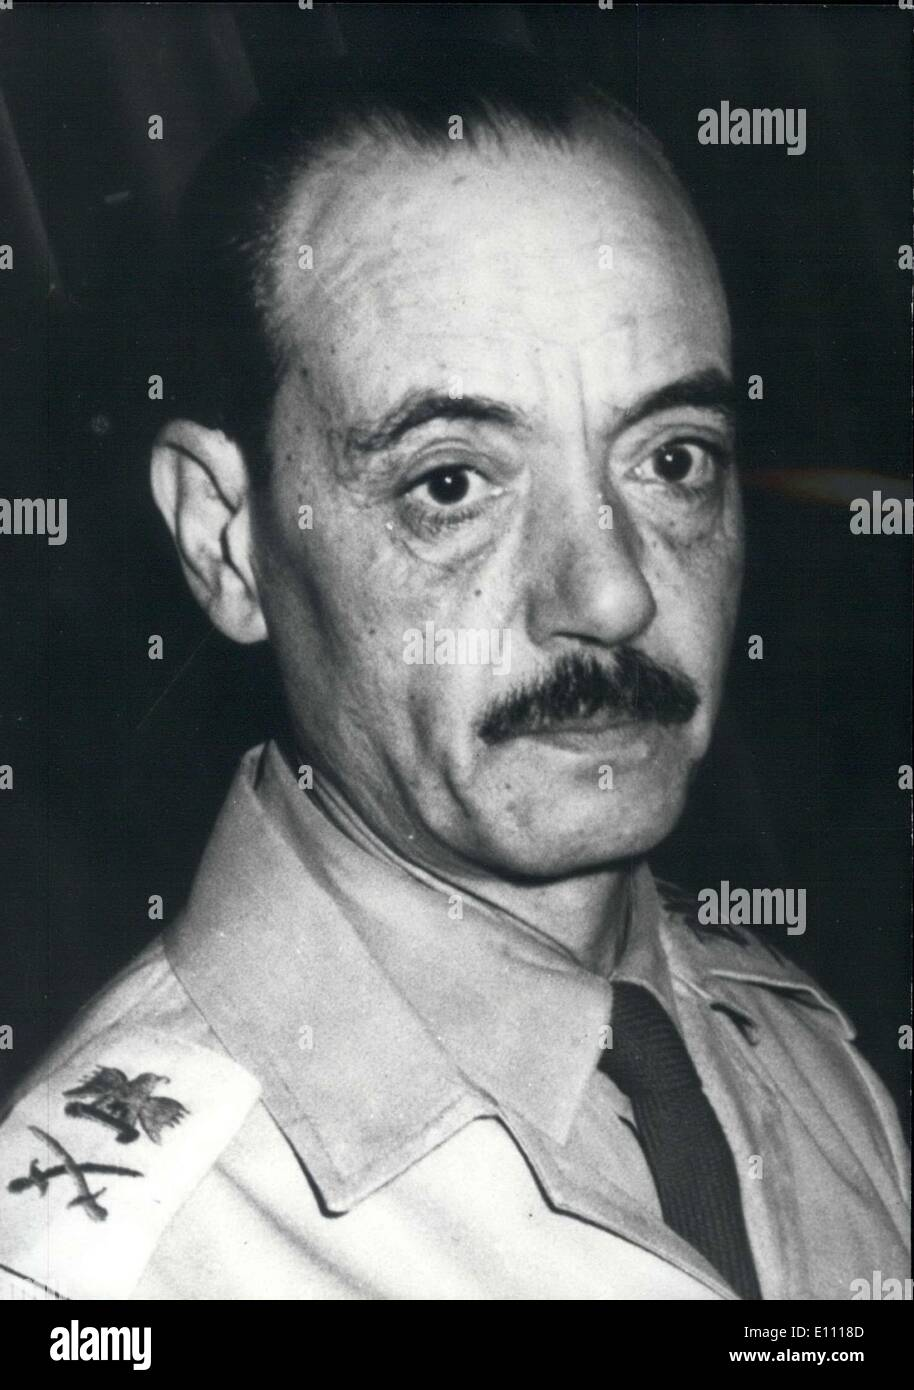 Dec. 27, 1974 - Genera; Gamassi of the Egyptian Army - Stock Image